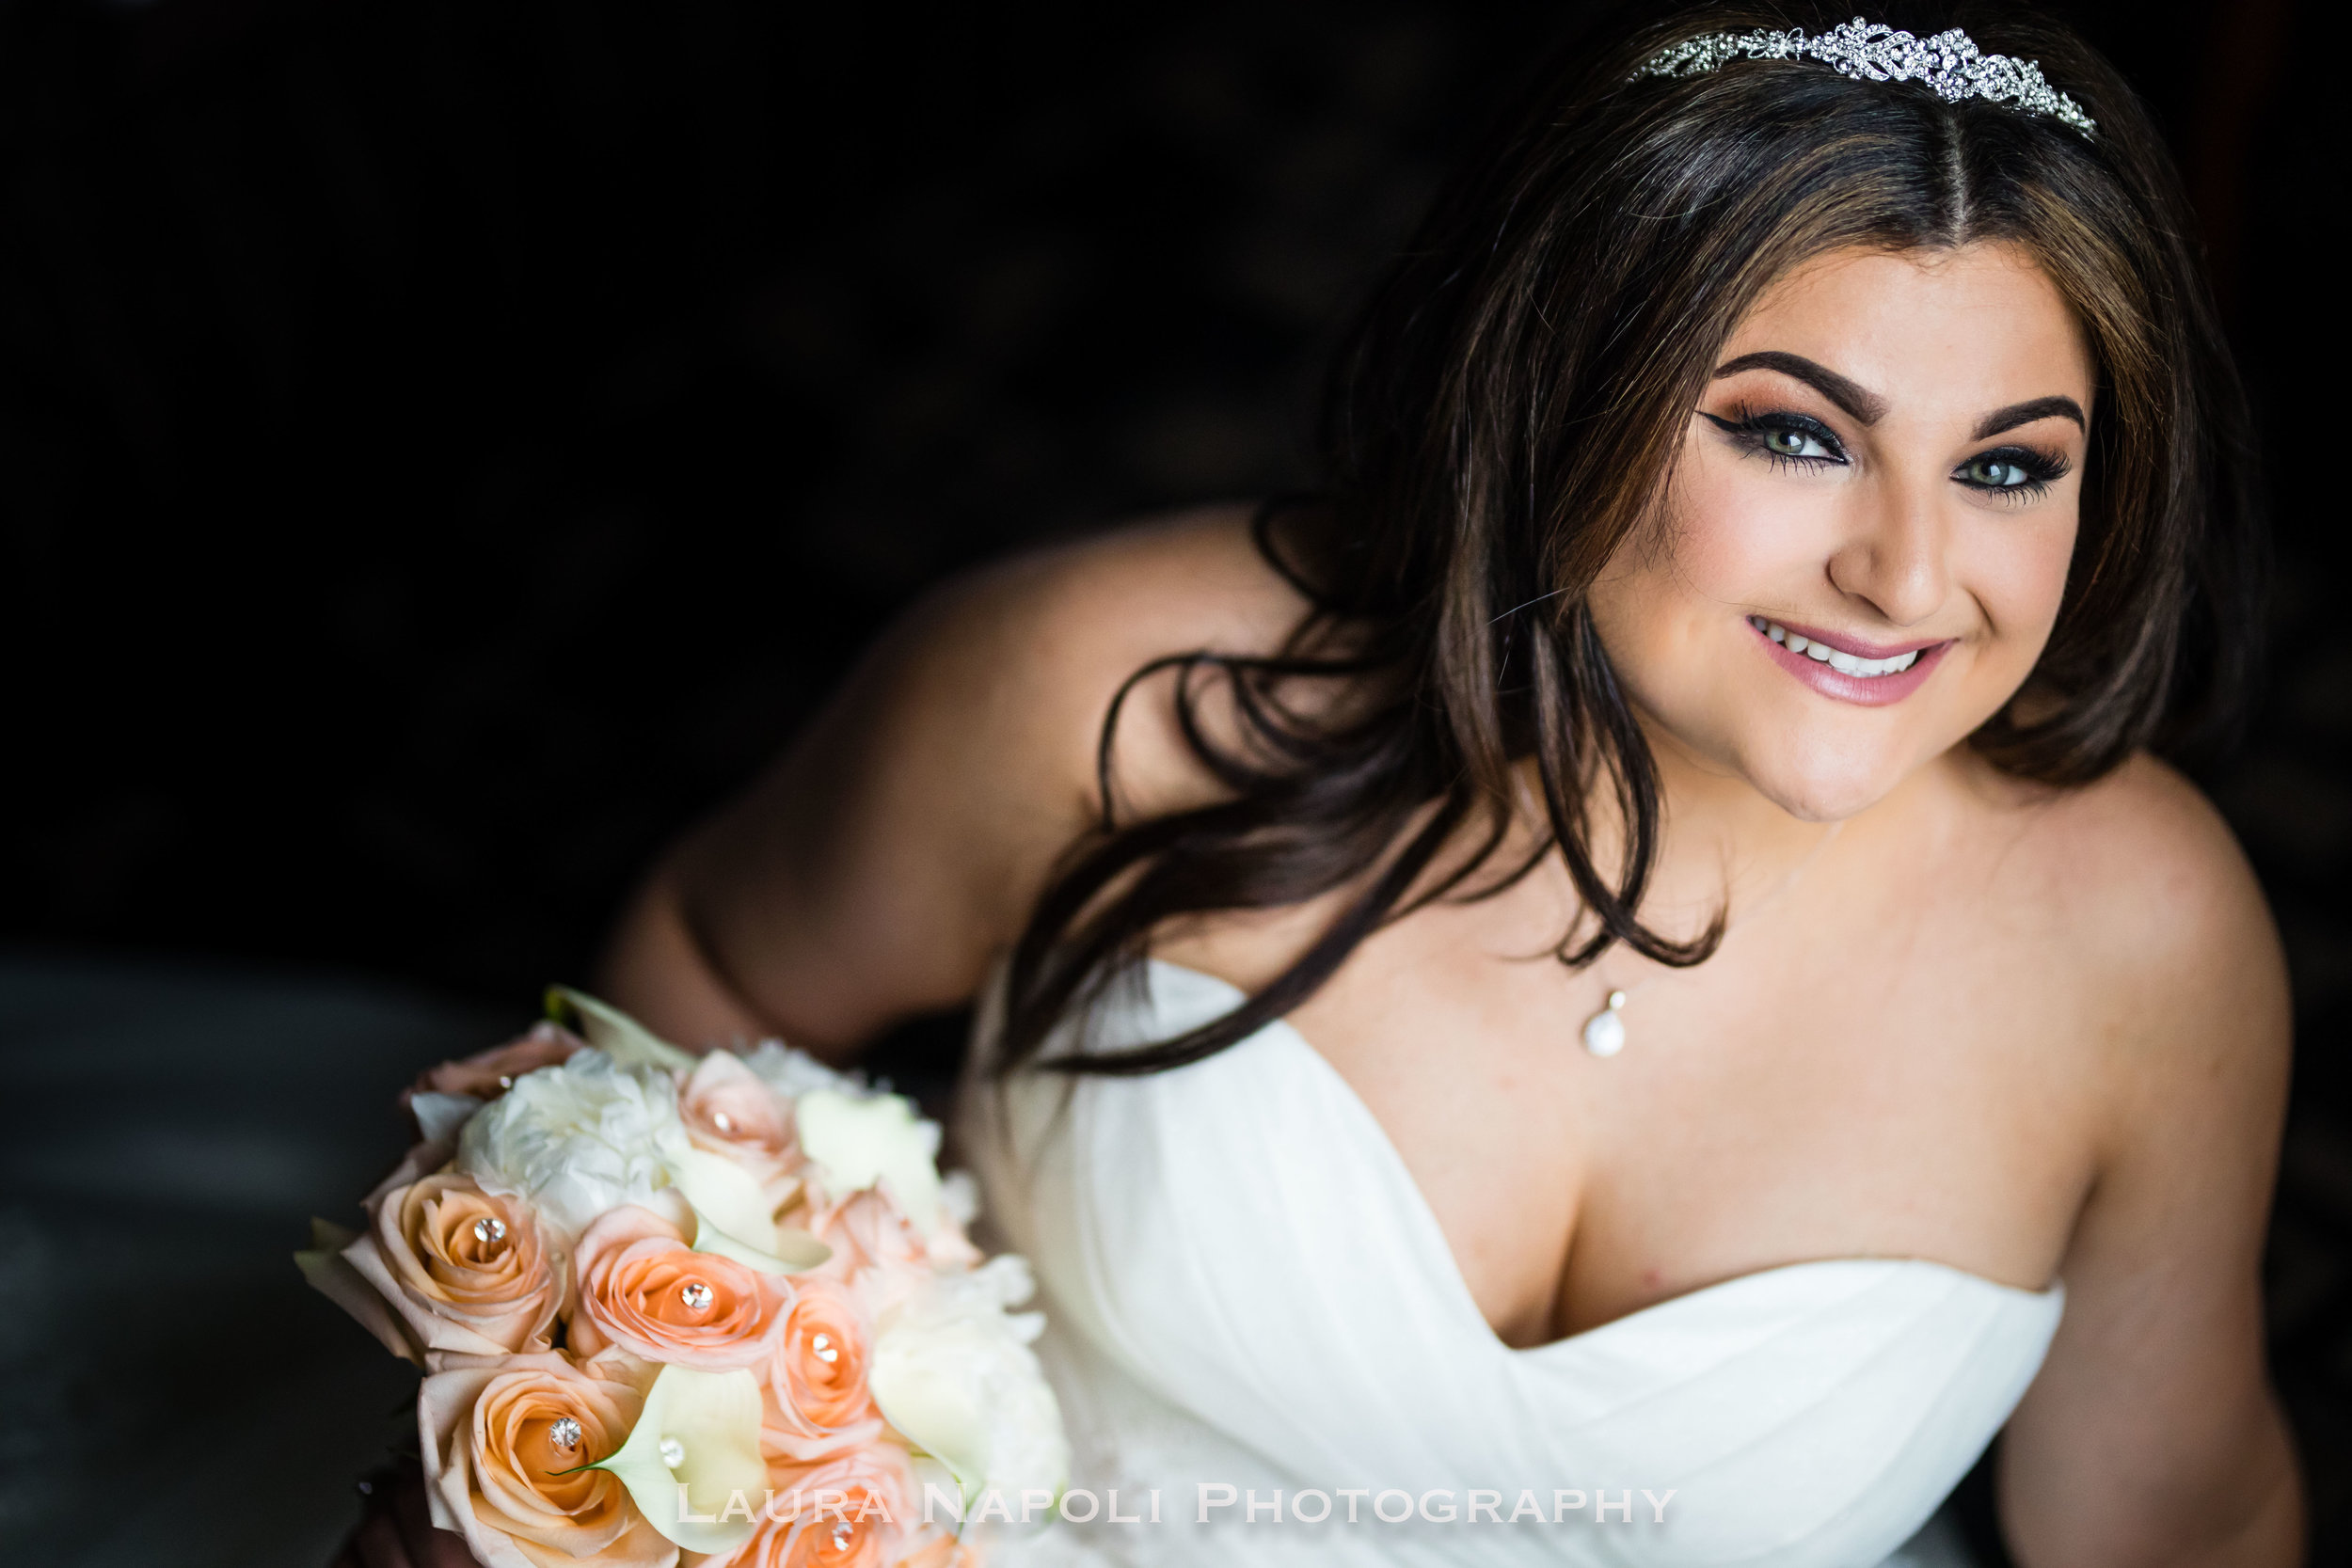 crowneplazacherryhillnjweddingphotographer-10.jpg